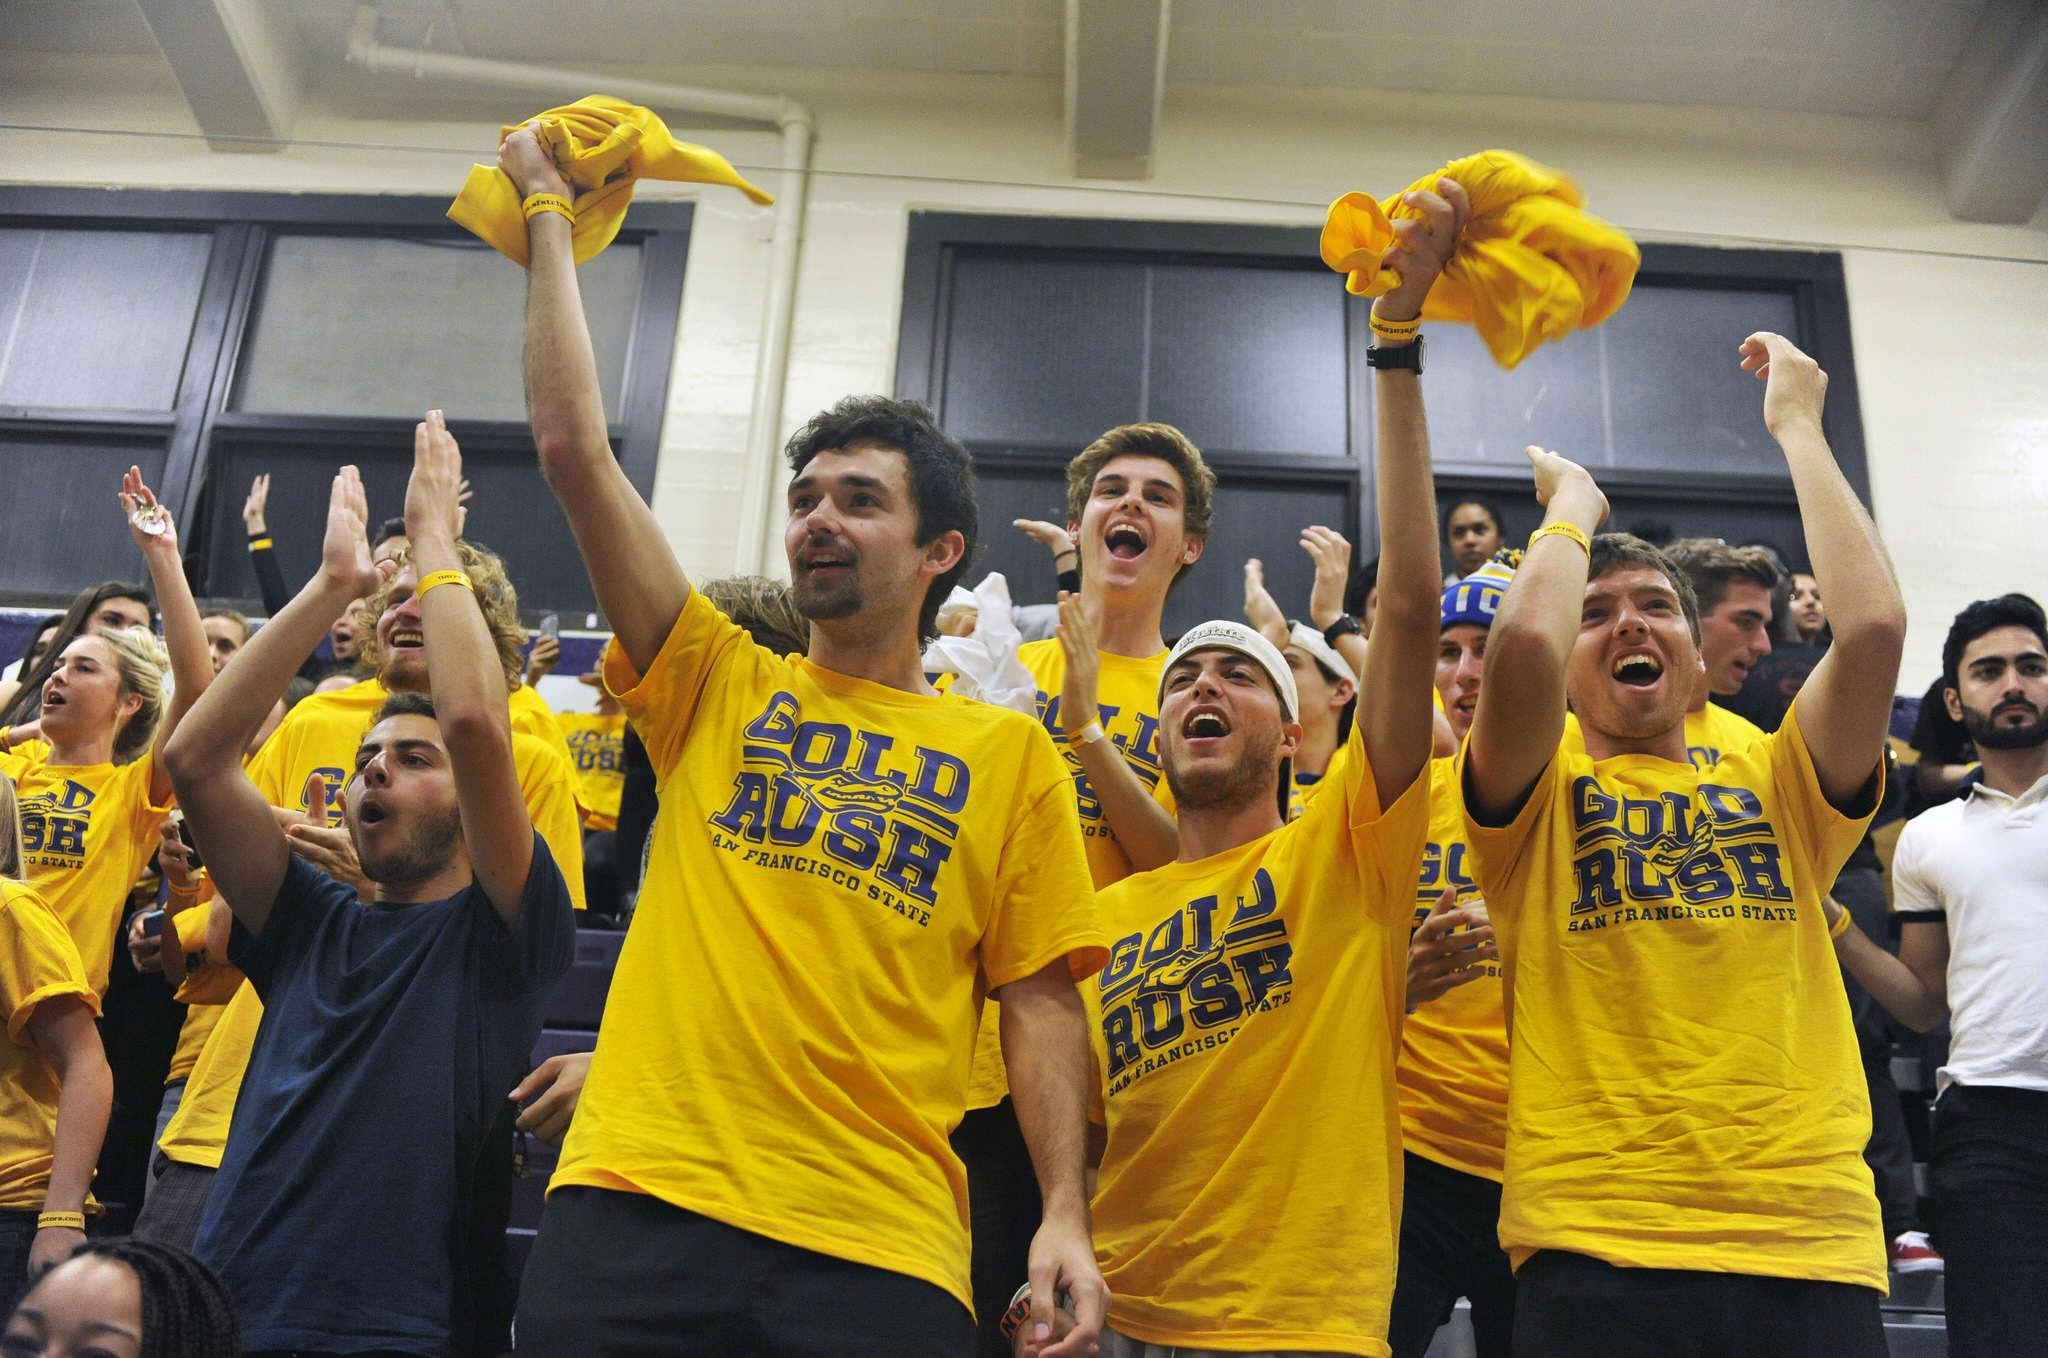 """Gold Rush"" night energizes crowd, key to men's successful night"